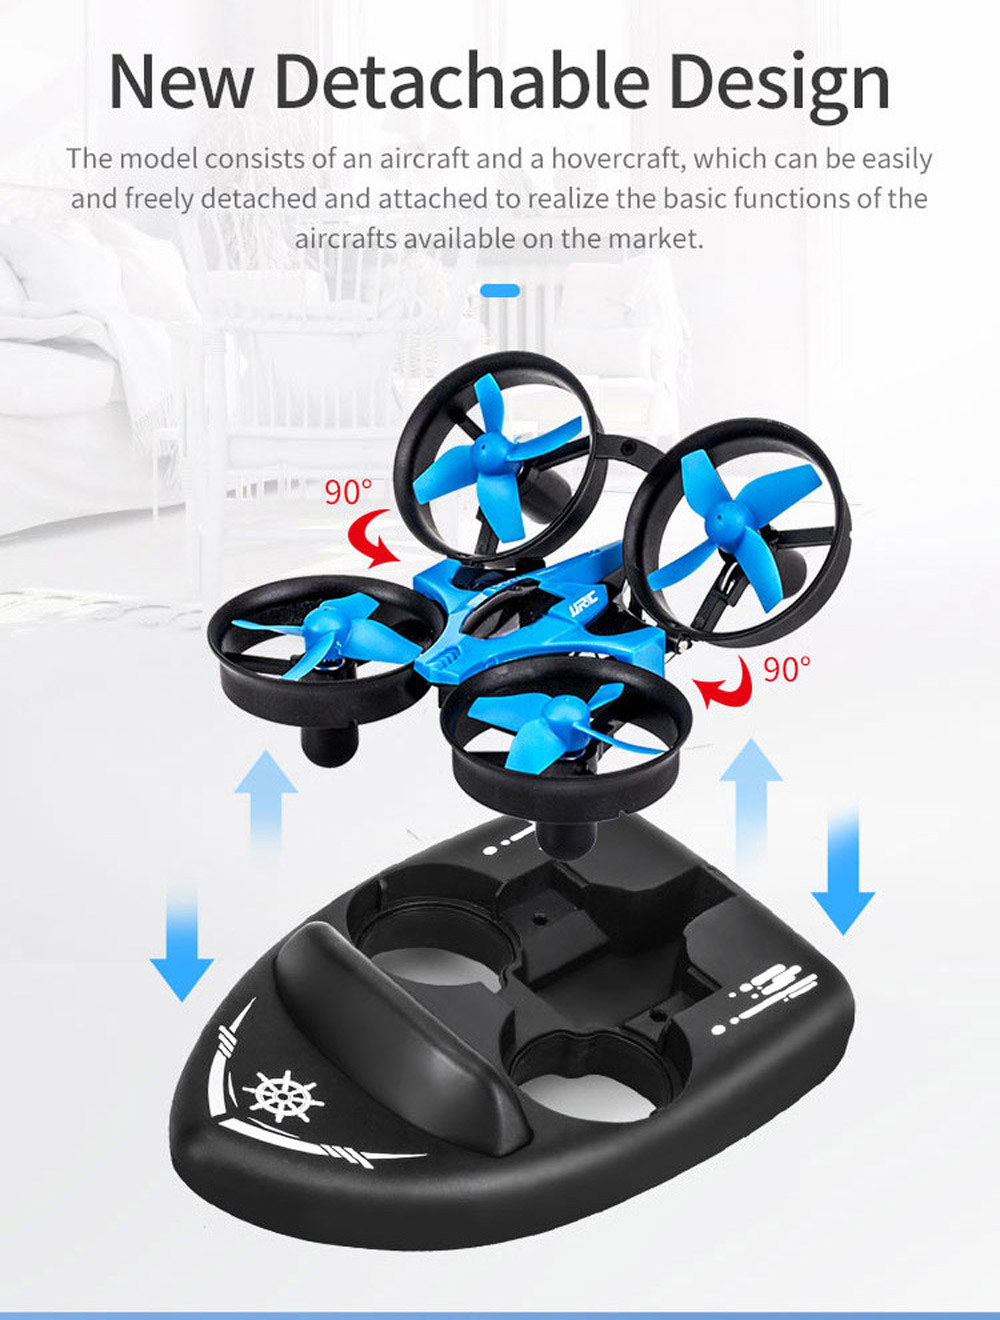 JJRC H36S 4 IN 1 Flying Drone Boat Flight Glider Hovercraft Ground Mode Detachable RC Quadcopter RTF - Two Batteries